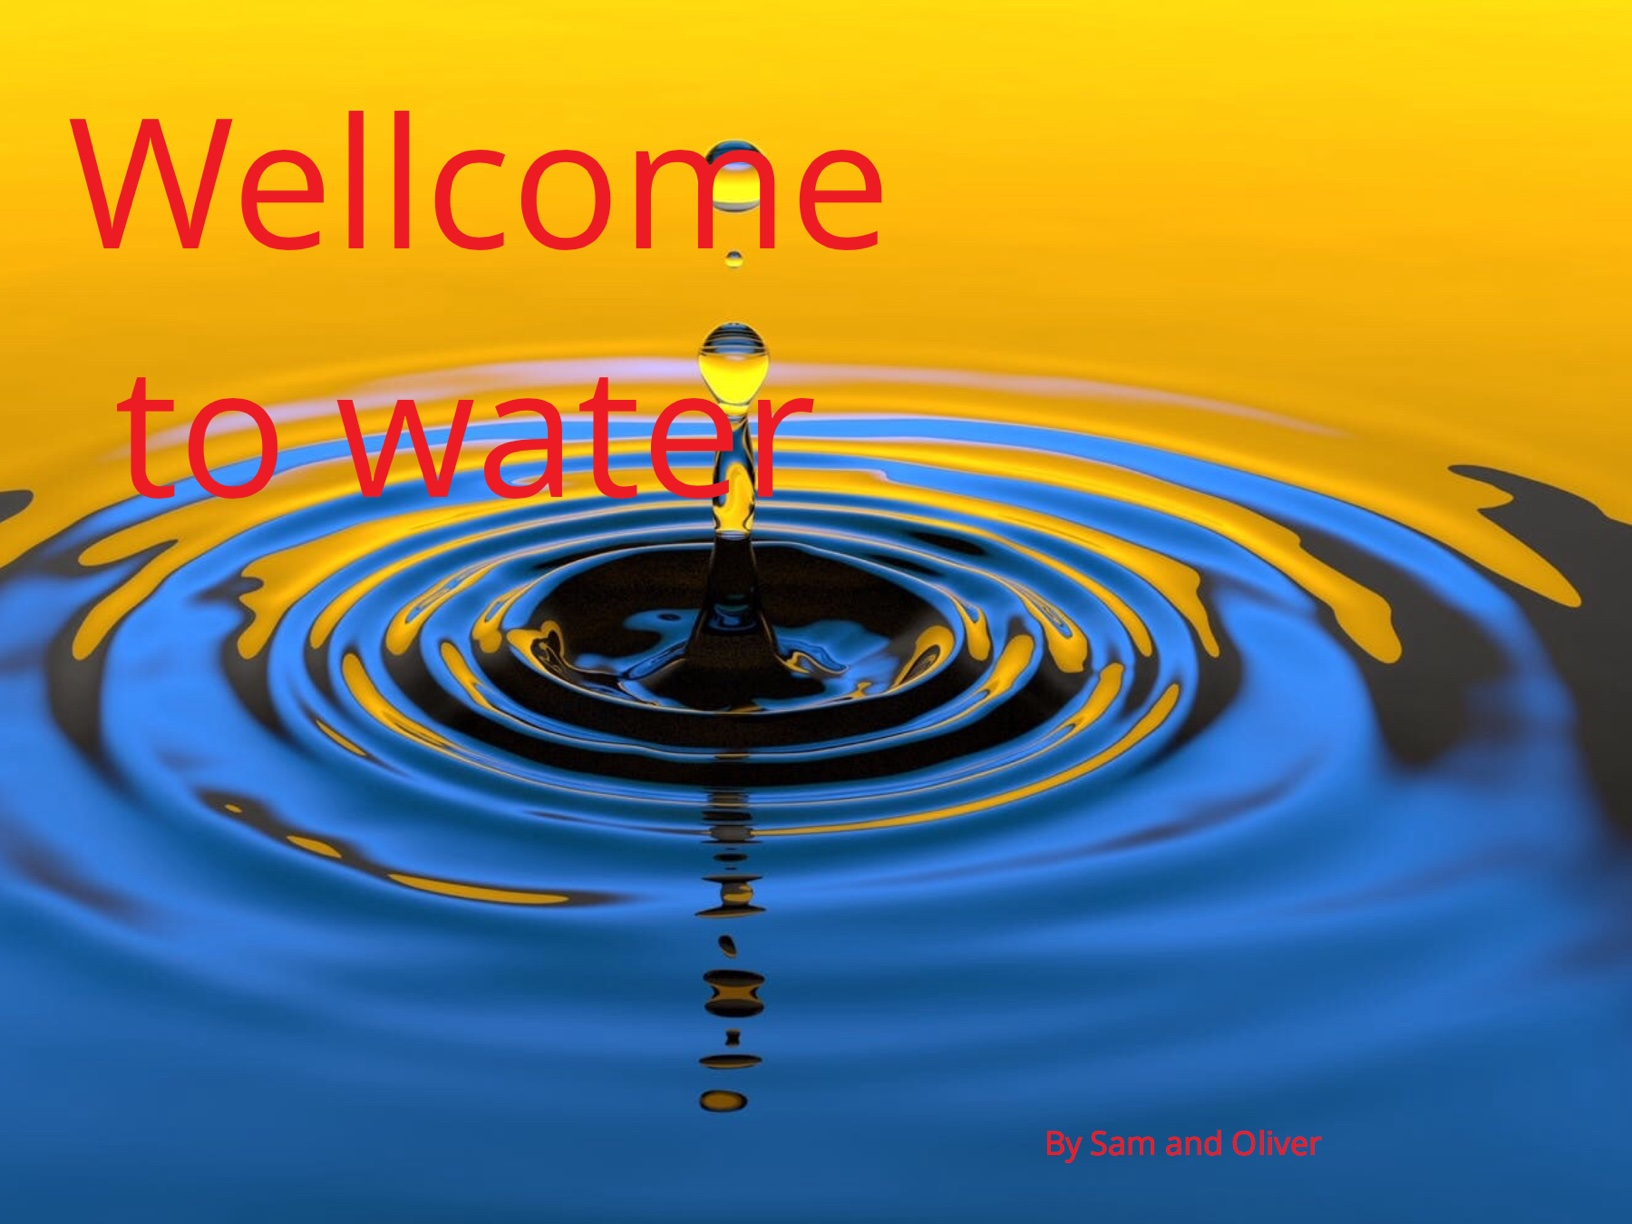 Welcome to water